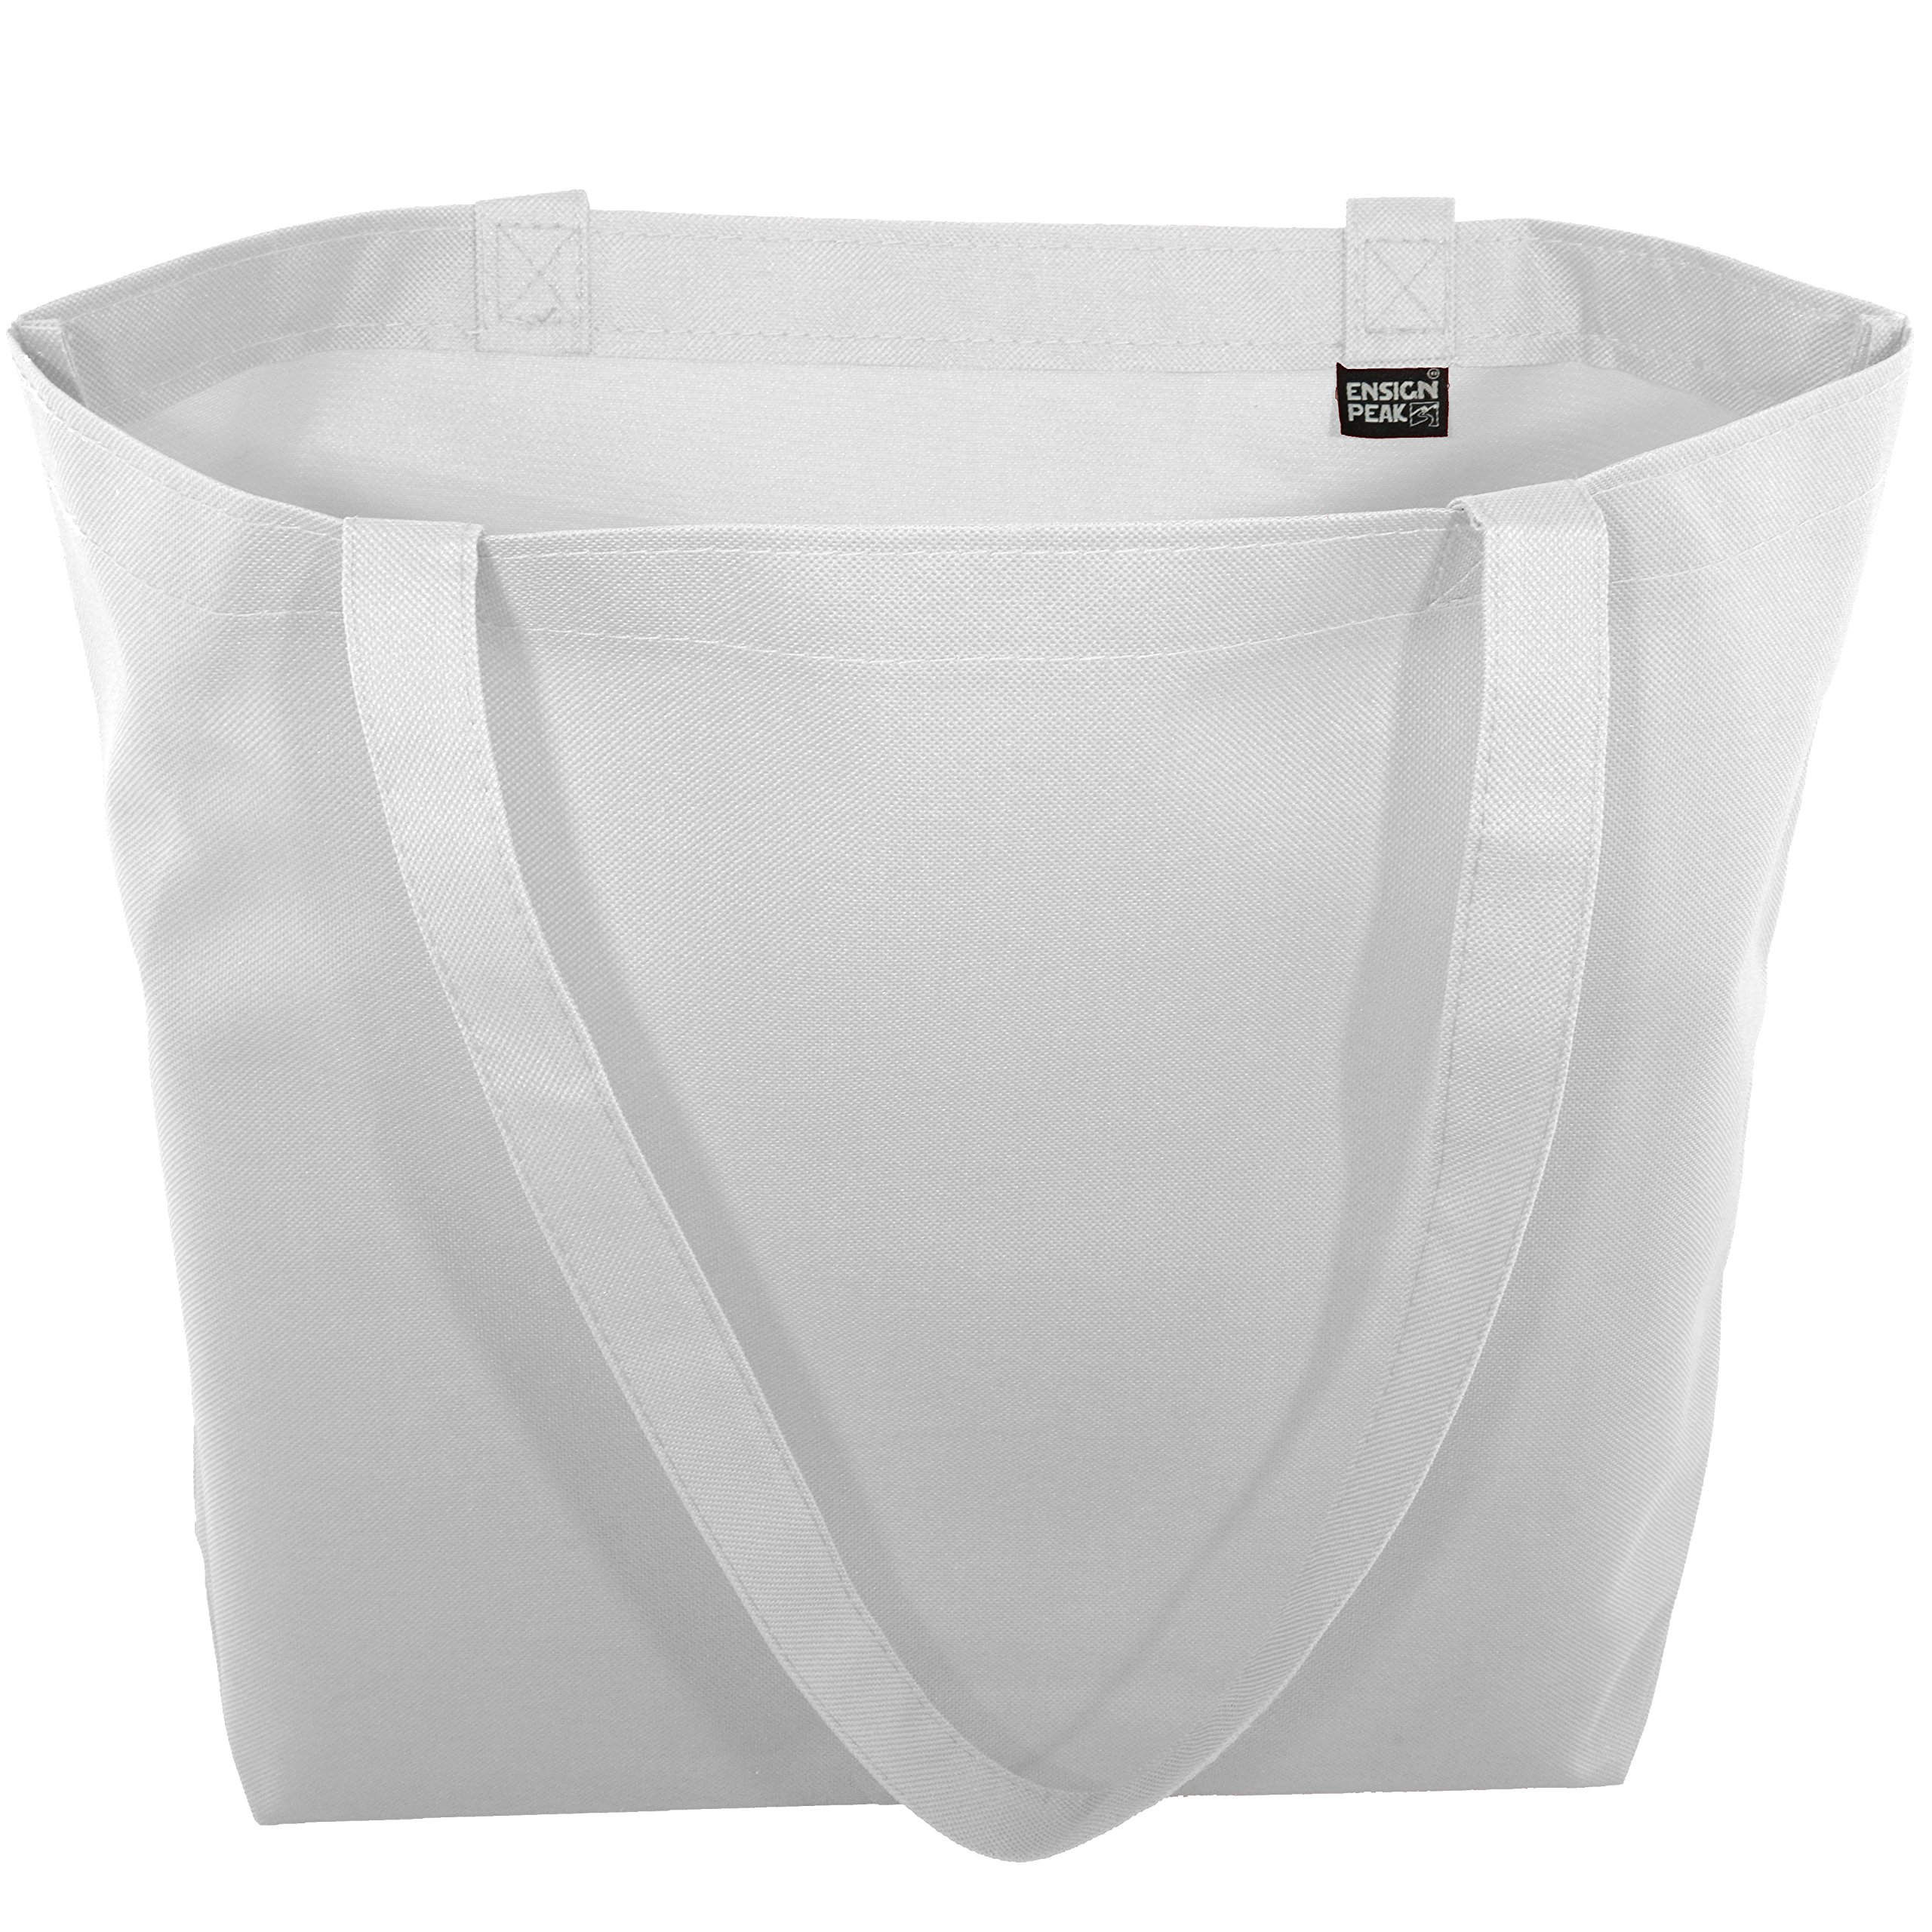 Large Shopping Tote with Shoulder Length Handles (White) by Ensign Peak (Image #3)